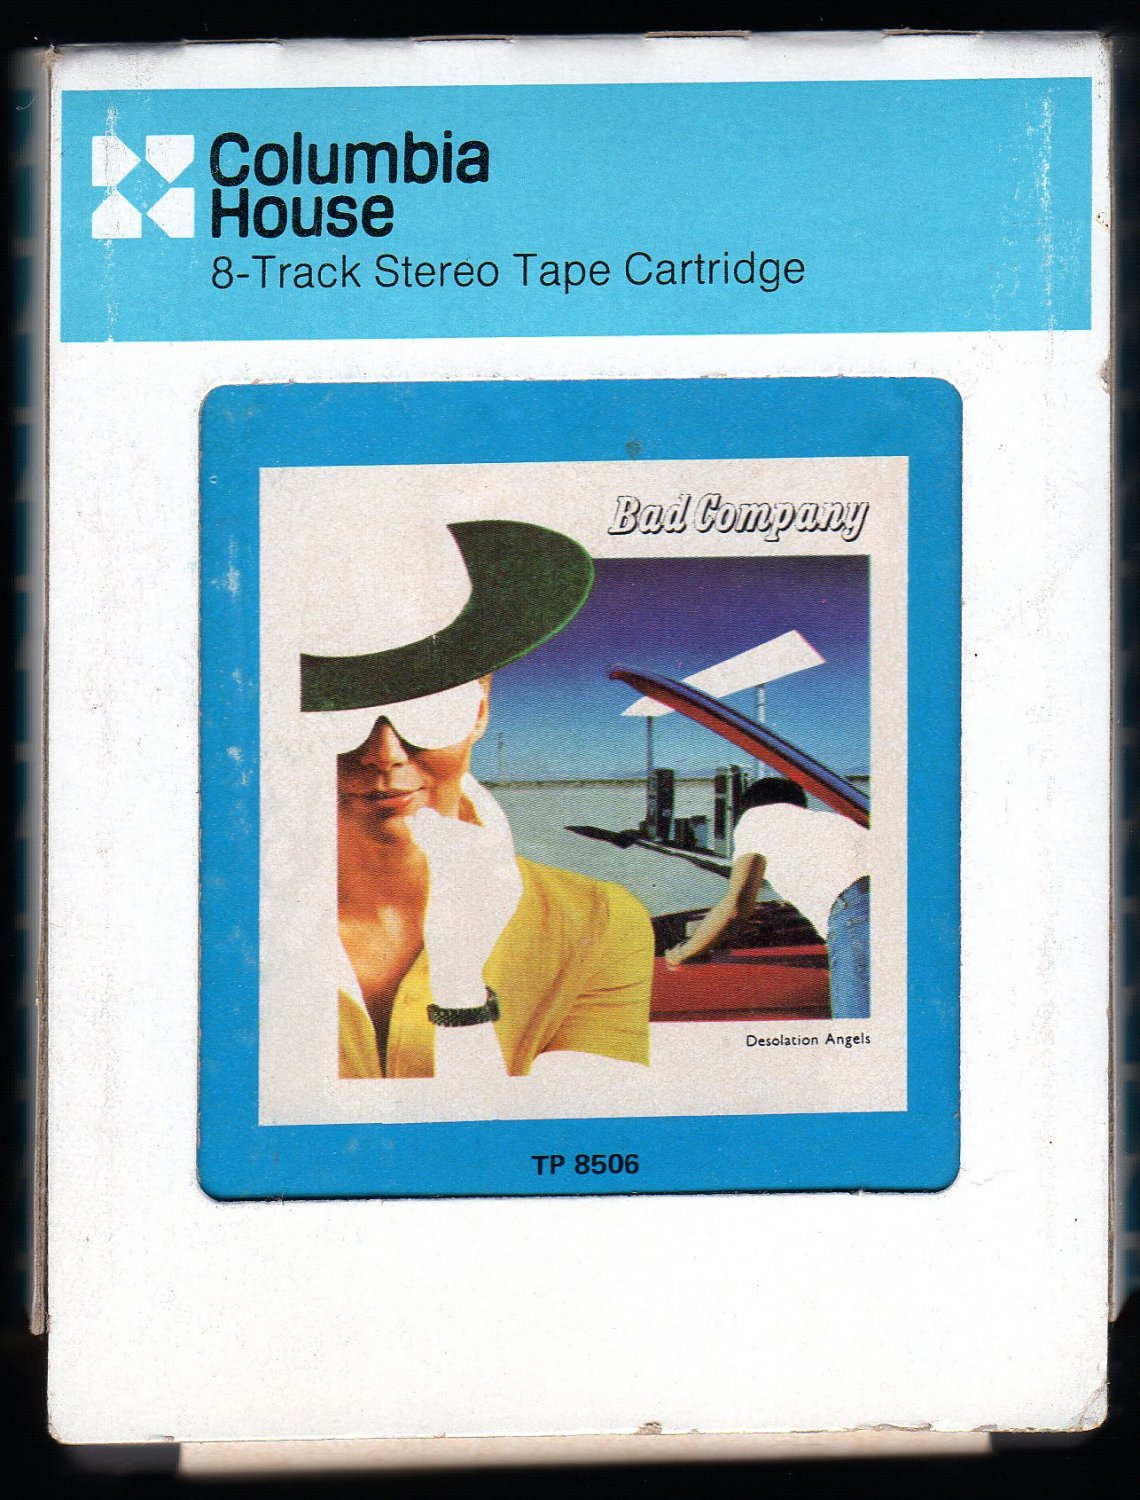 Bad Company - Desolation Angels 1979 CRC SWAN SONG A28 8-TRACK TAPE